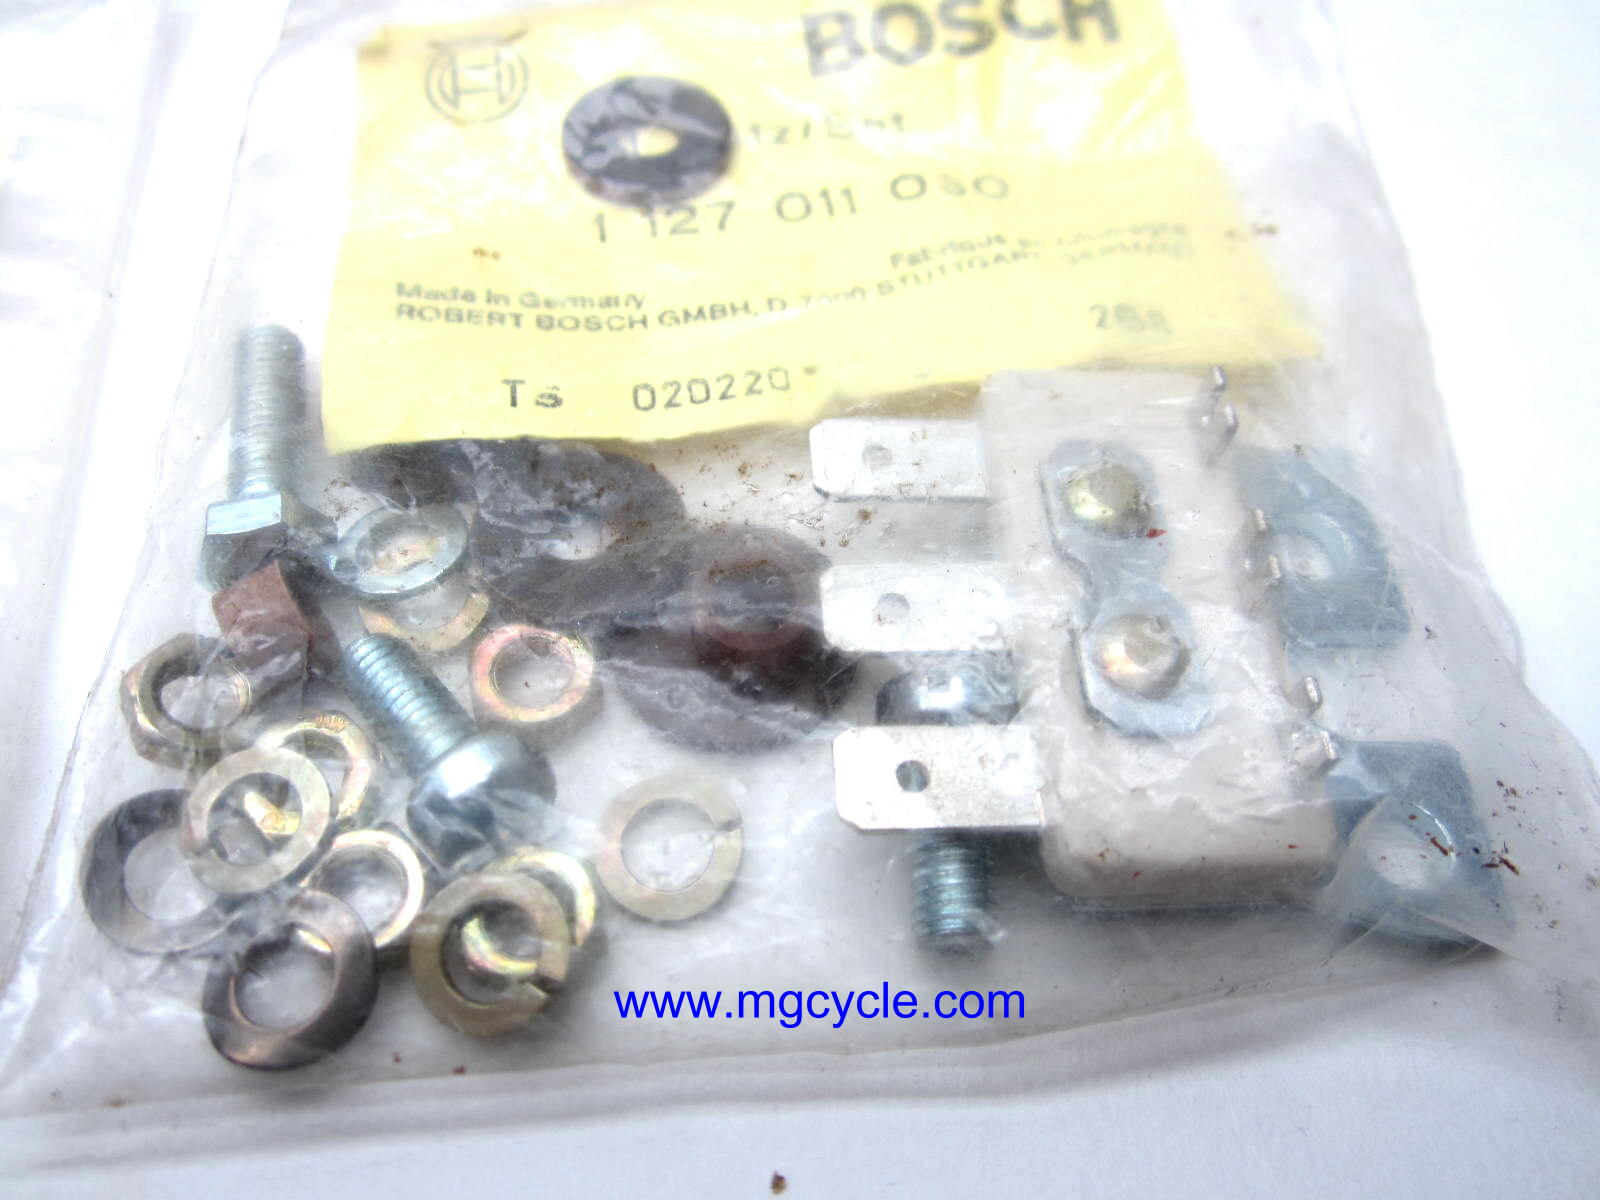 NOS Bosch alt stator repair kit 1 127 011 030 + brushes springs